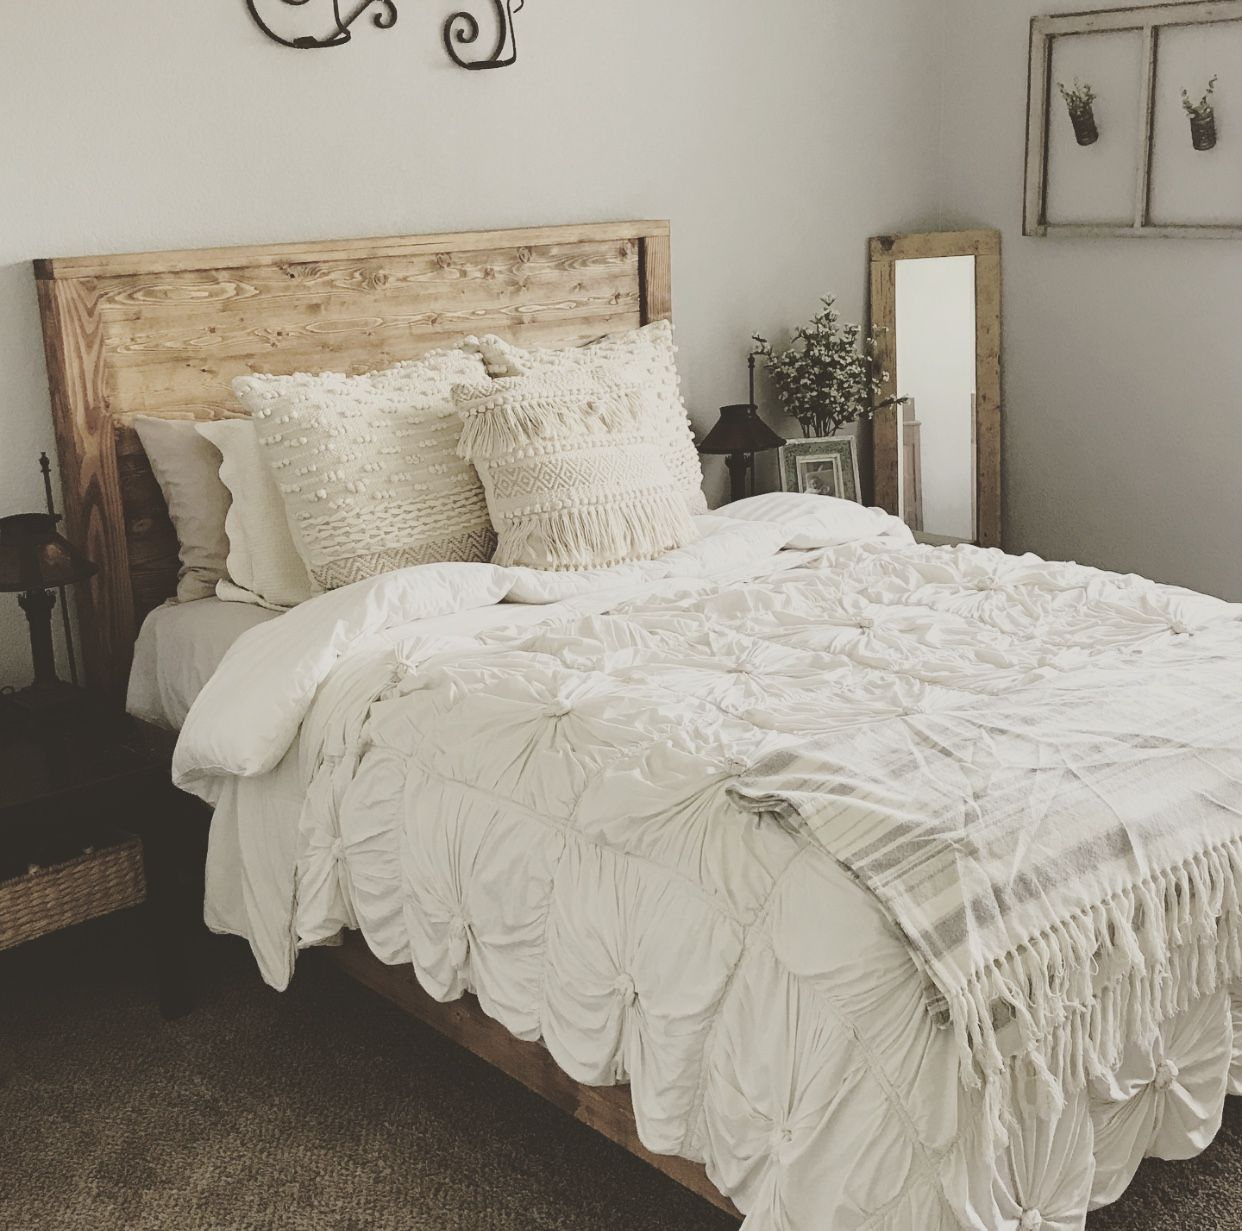 A beautifully crafted wooden headboard and bed frame. this